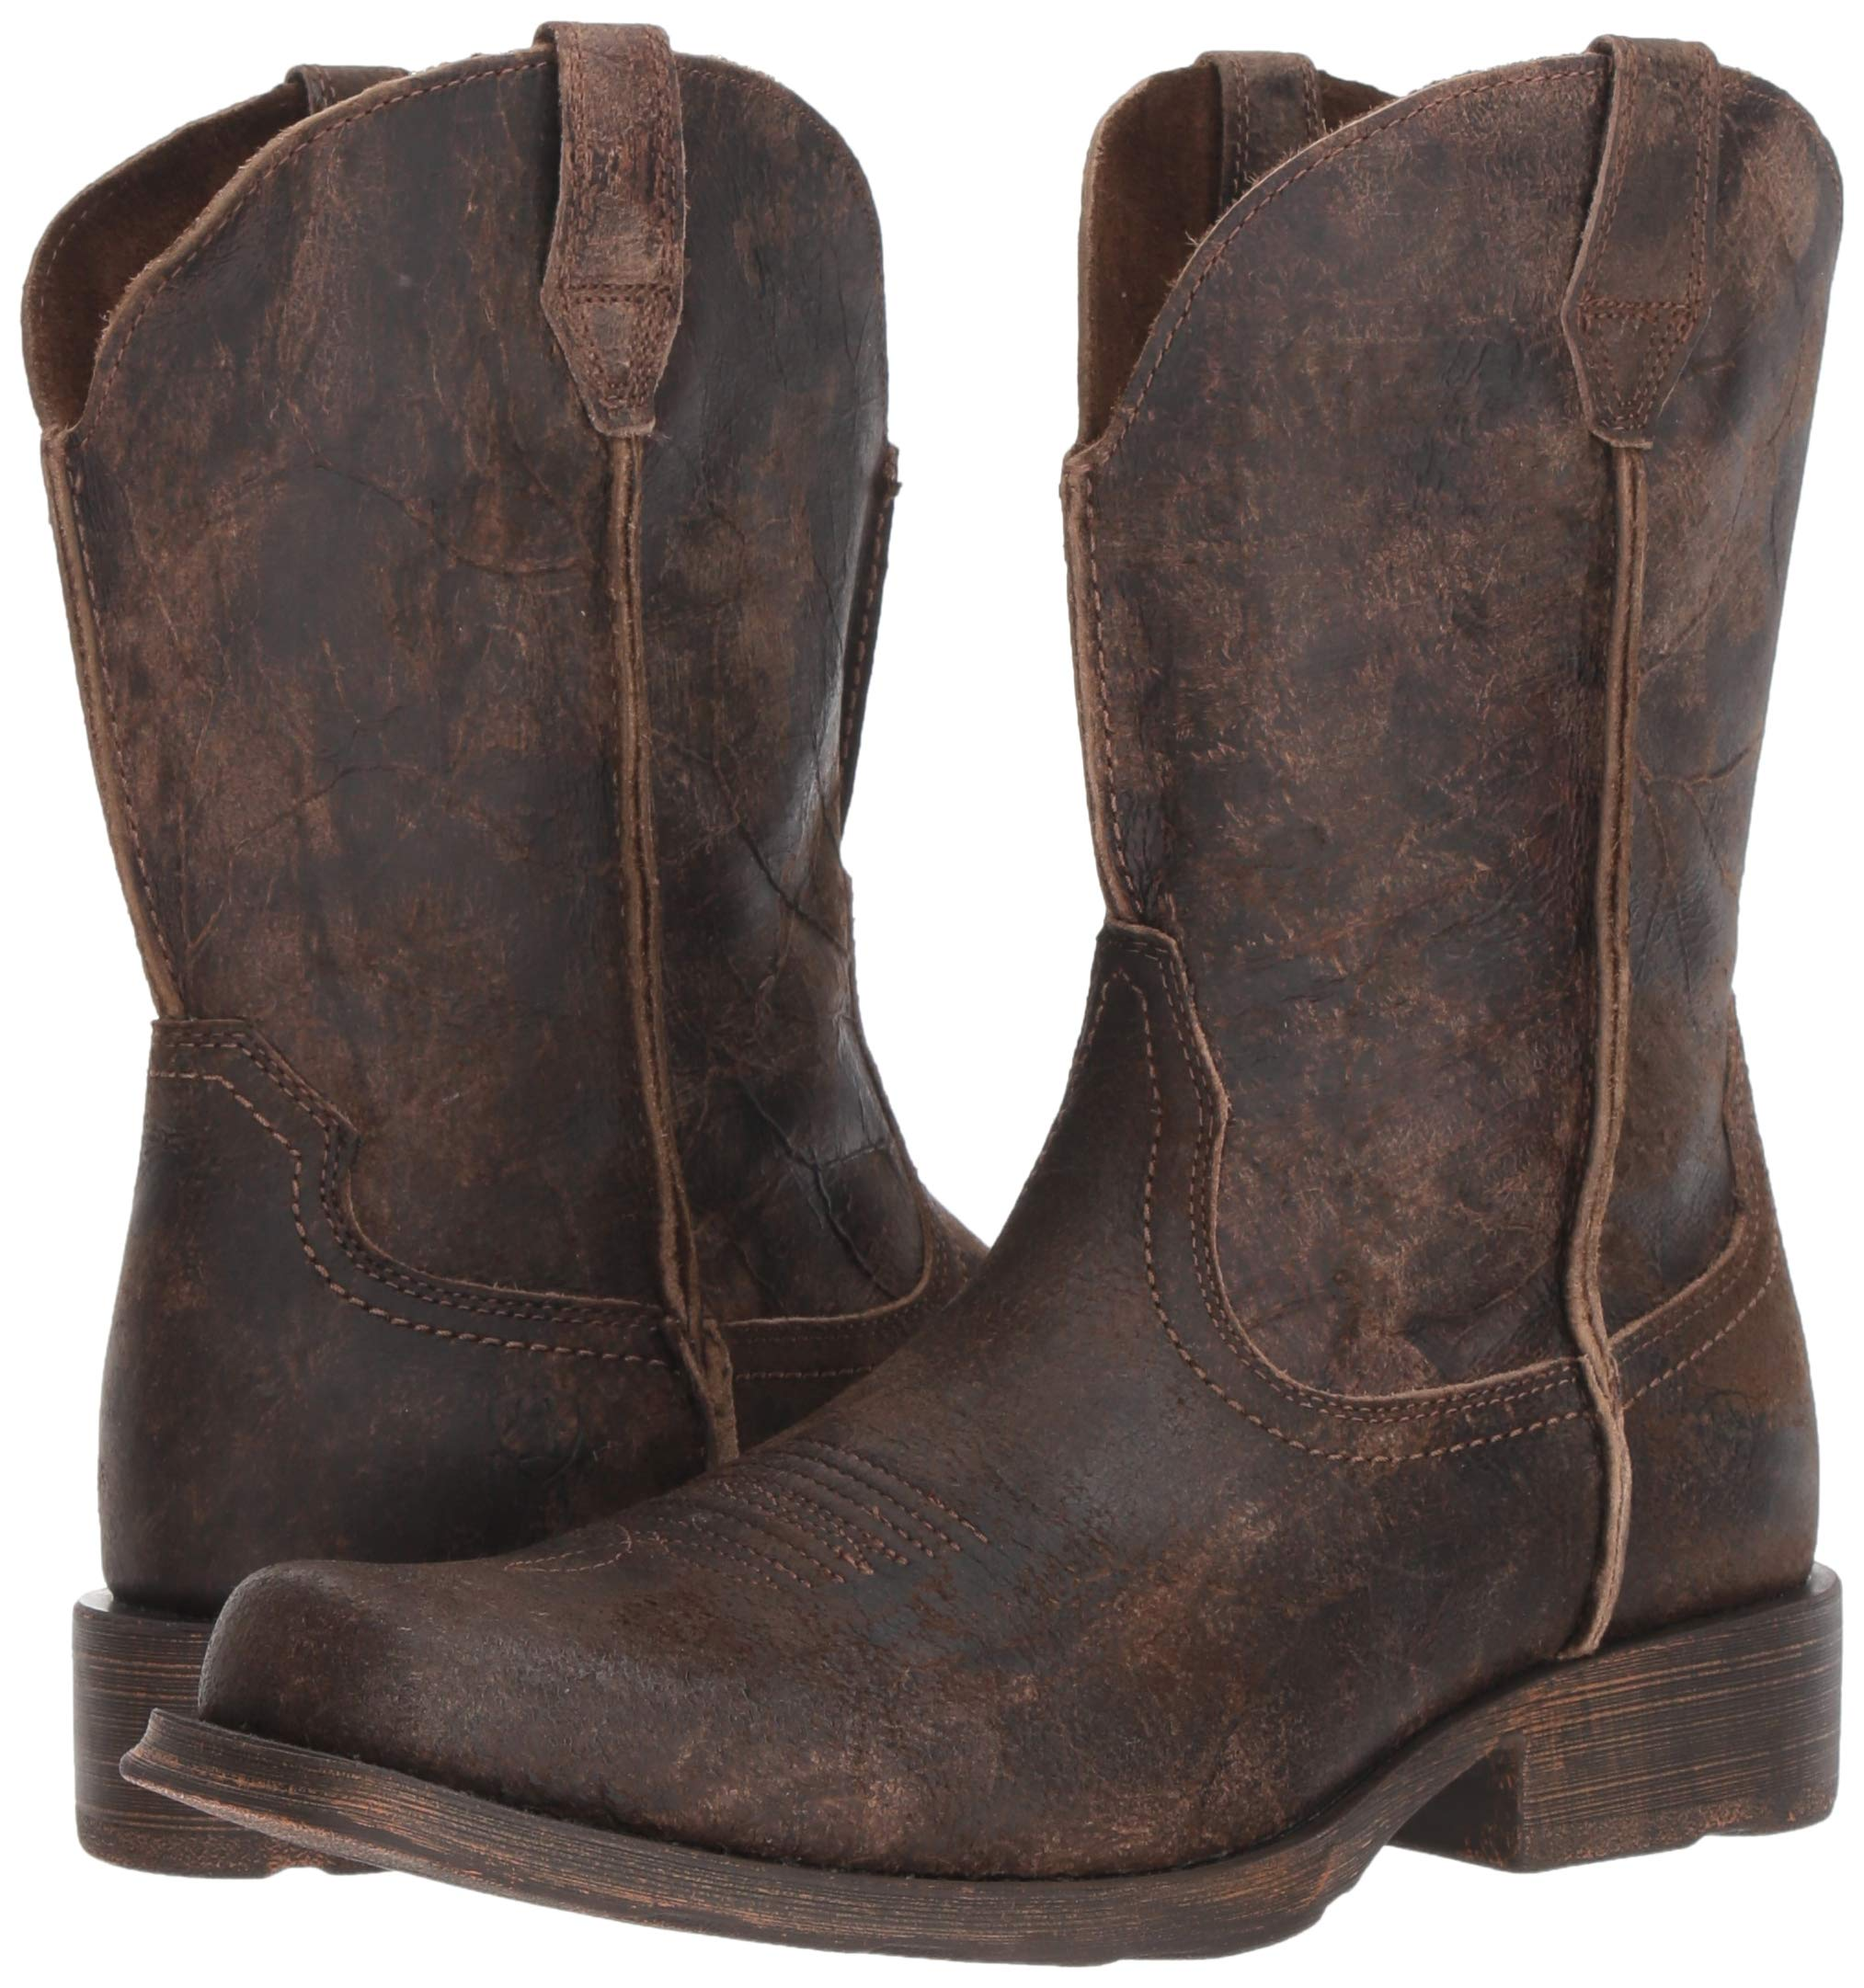 Ariat Men's Rambler Western Boot, Antiqued Grey, 13 2E US by ARIAT (Image #6)